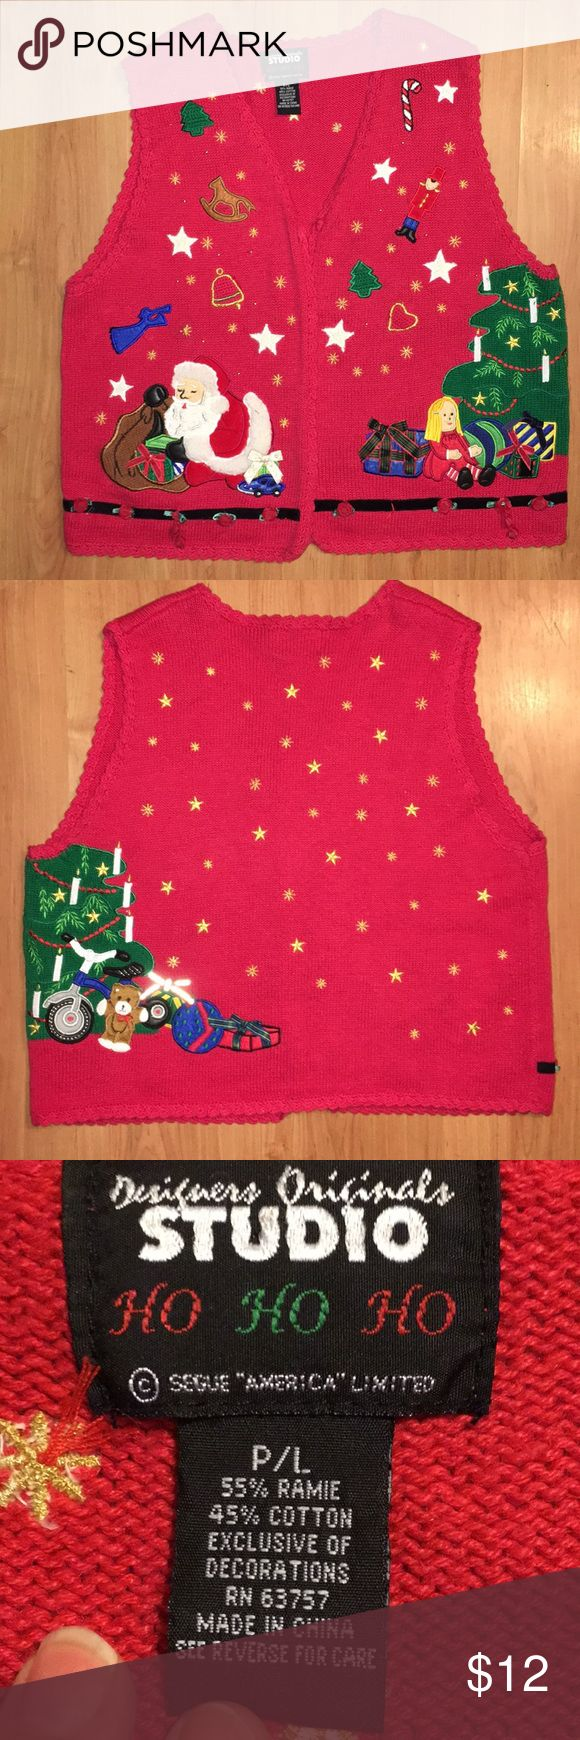 🎄 Tacky Christmas sweater vest Vintage size petite large tacky/ugly Christmas sweater vest. No rips, holes or stains. It measures 20 inches from underarm to underarm. It's 22 inches long. Great detailing on the front & back! ❤️ Designer Originals Studio Sweaters V-Necks